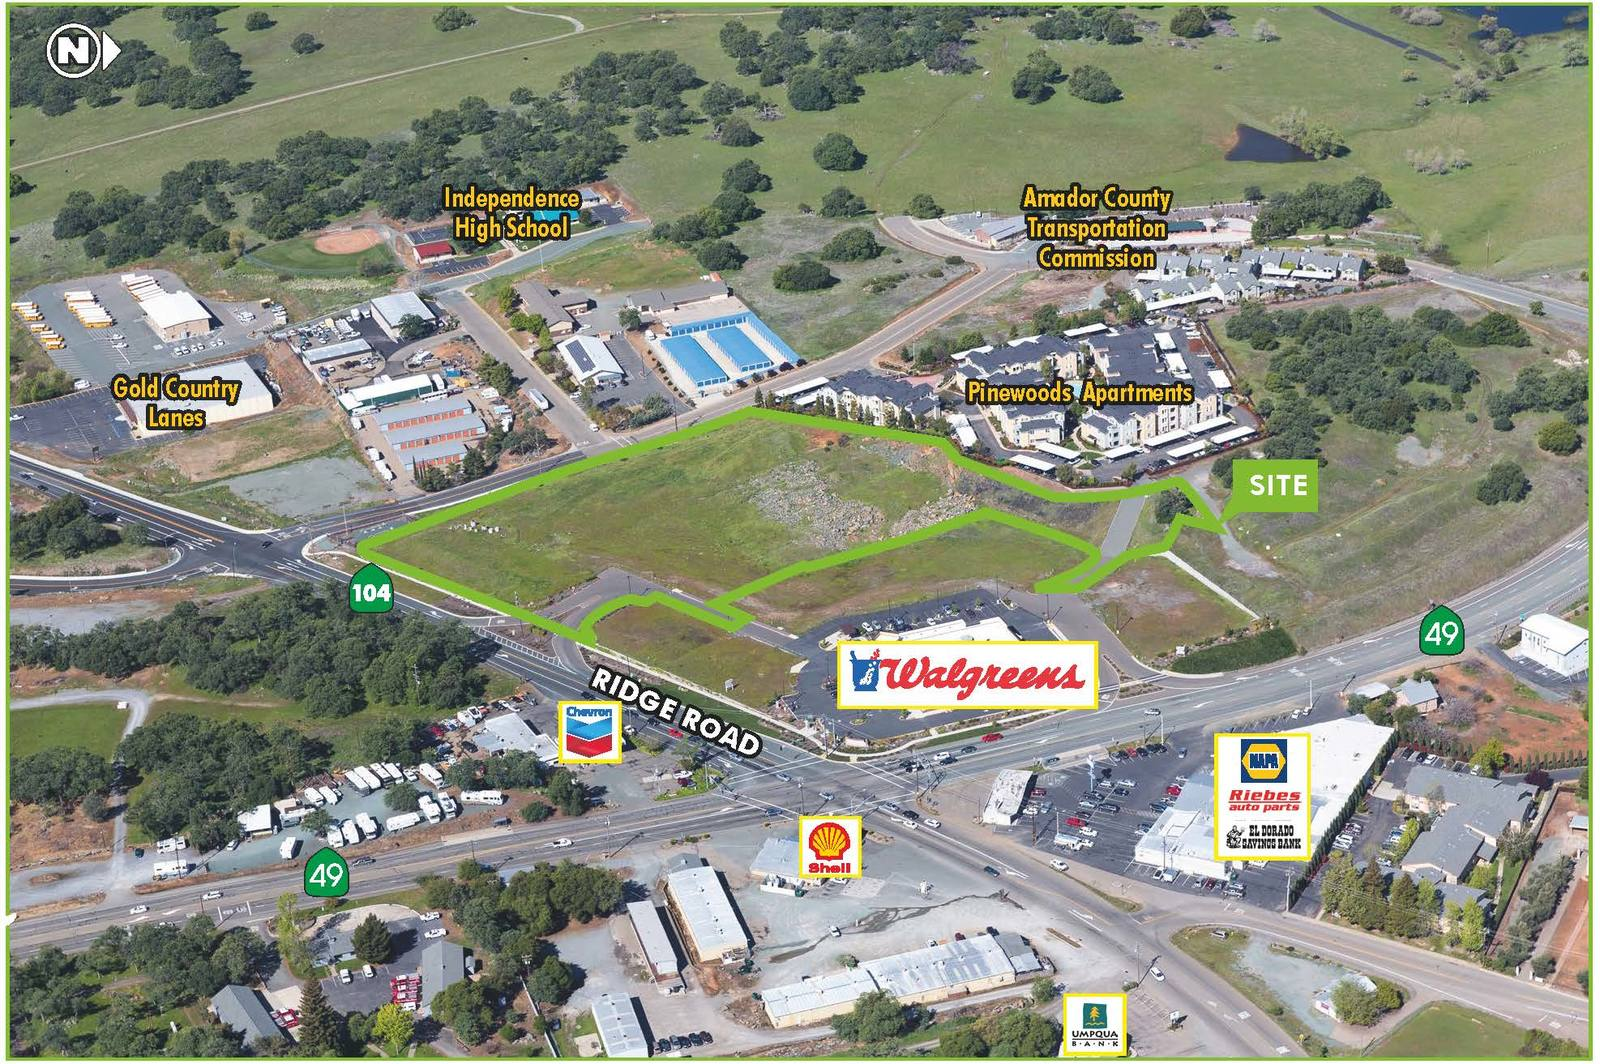 CBRE RetailHigh Identity Commercial Land - Sutter CreekNWQ Highway 49 & Ridge Road  Photo